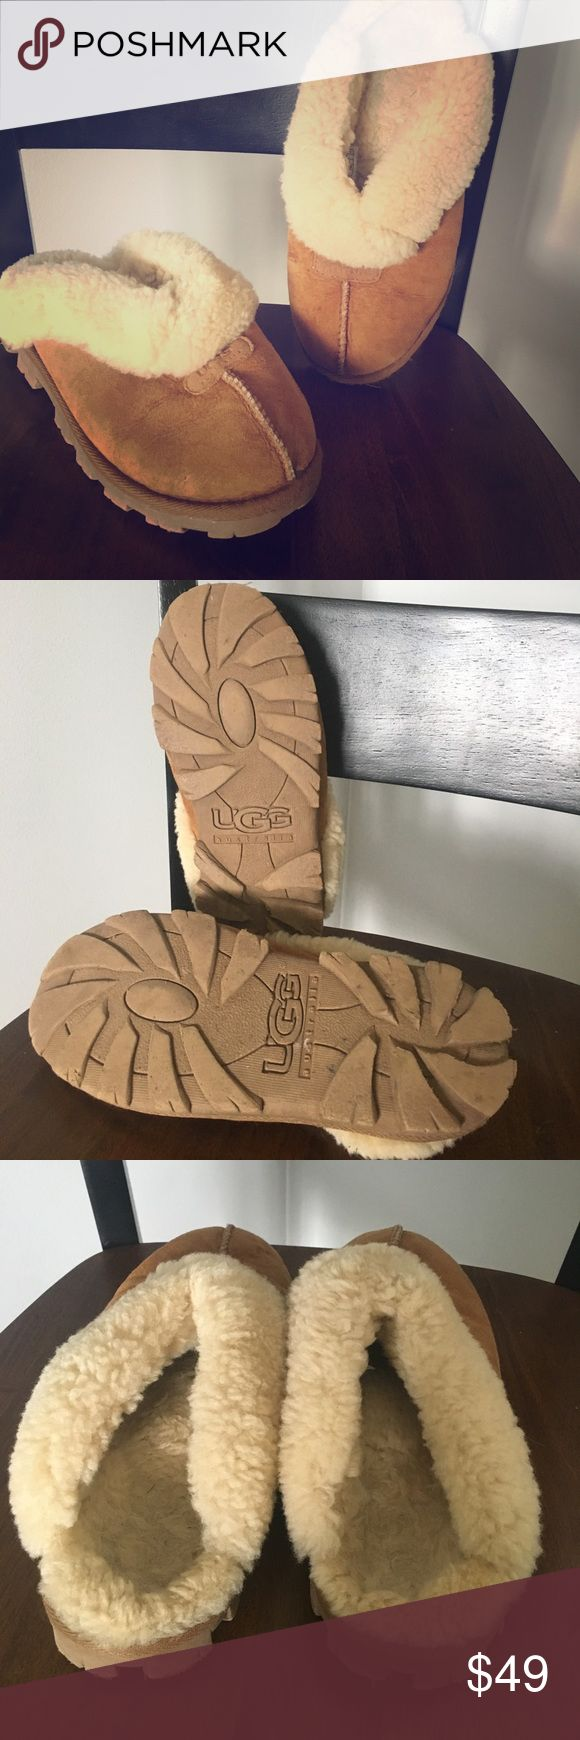 Women's UGG slide on slippers Women's UGG slide in slippers size 7, chestnut color. Gently used but good condition! UGG Shoes Mules & Clogs